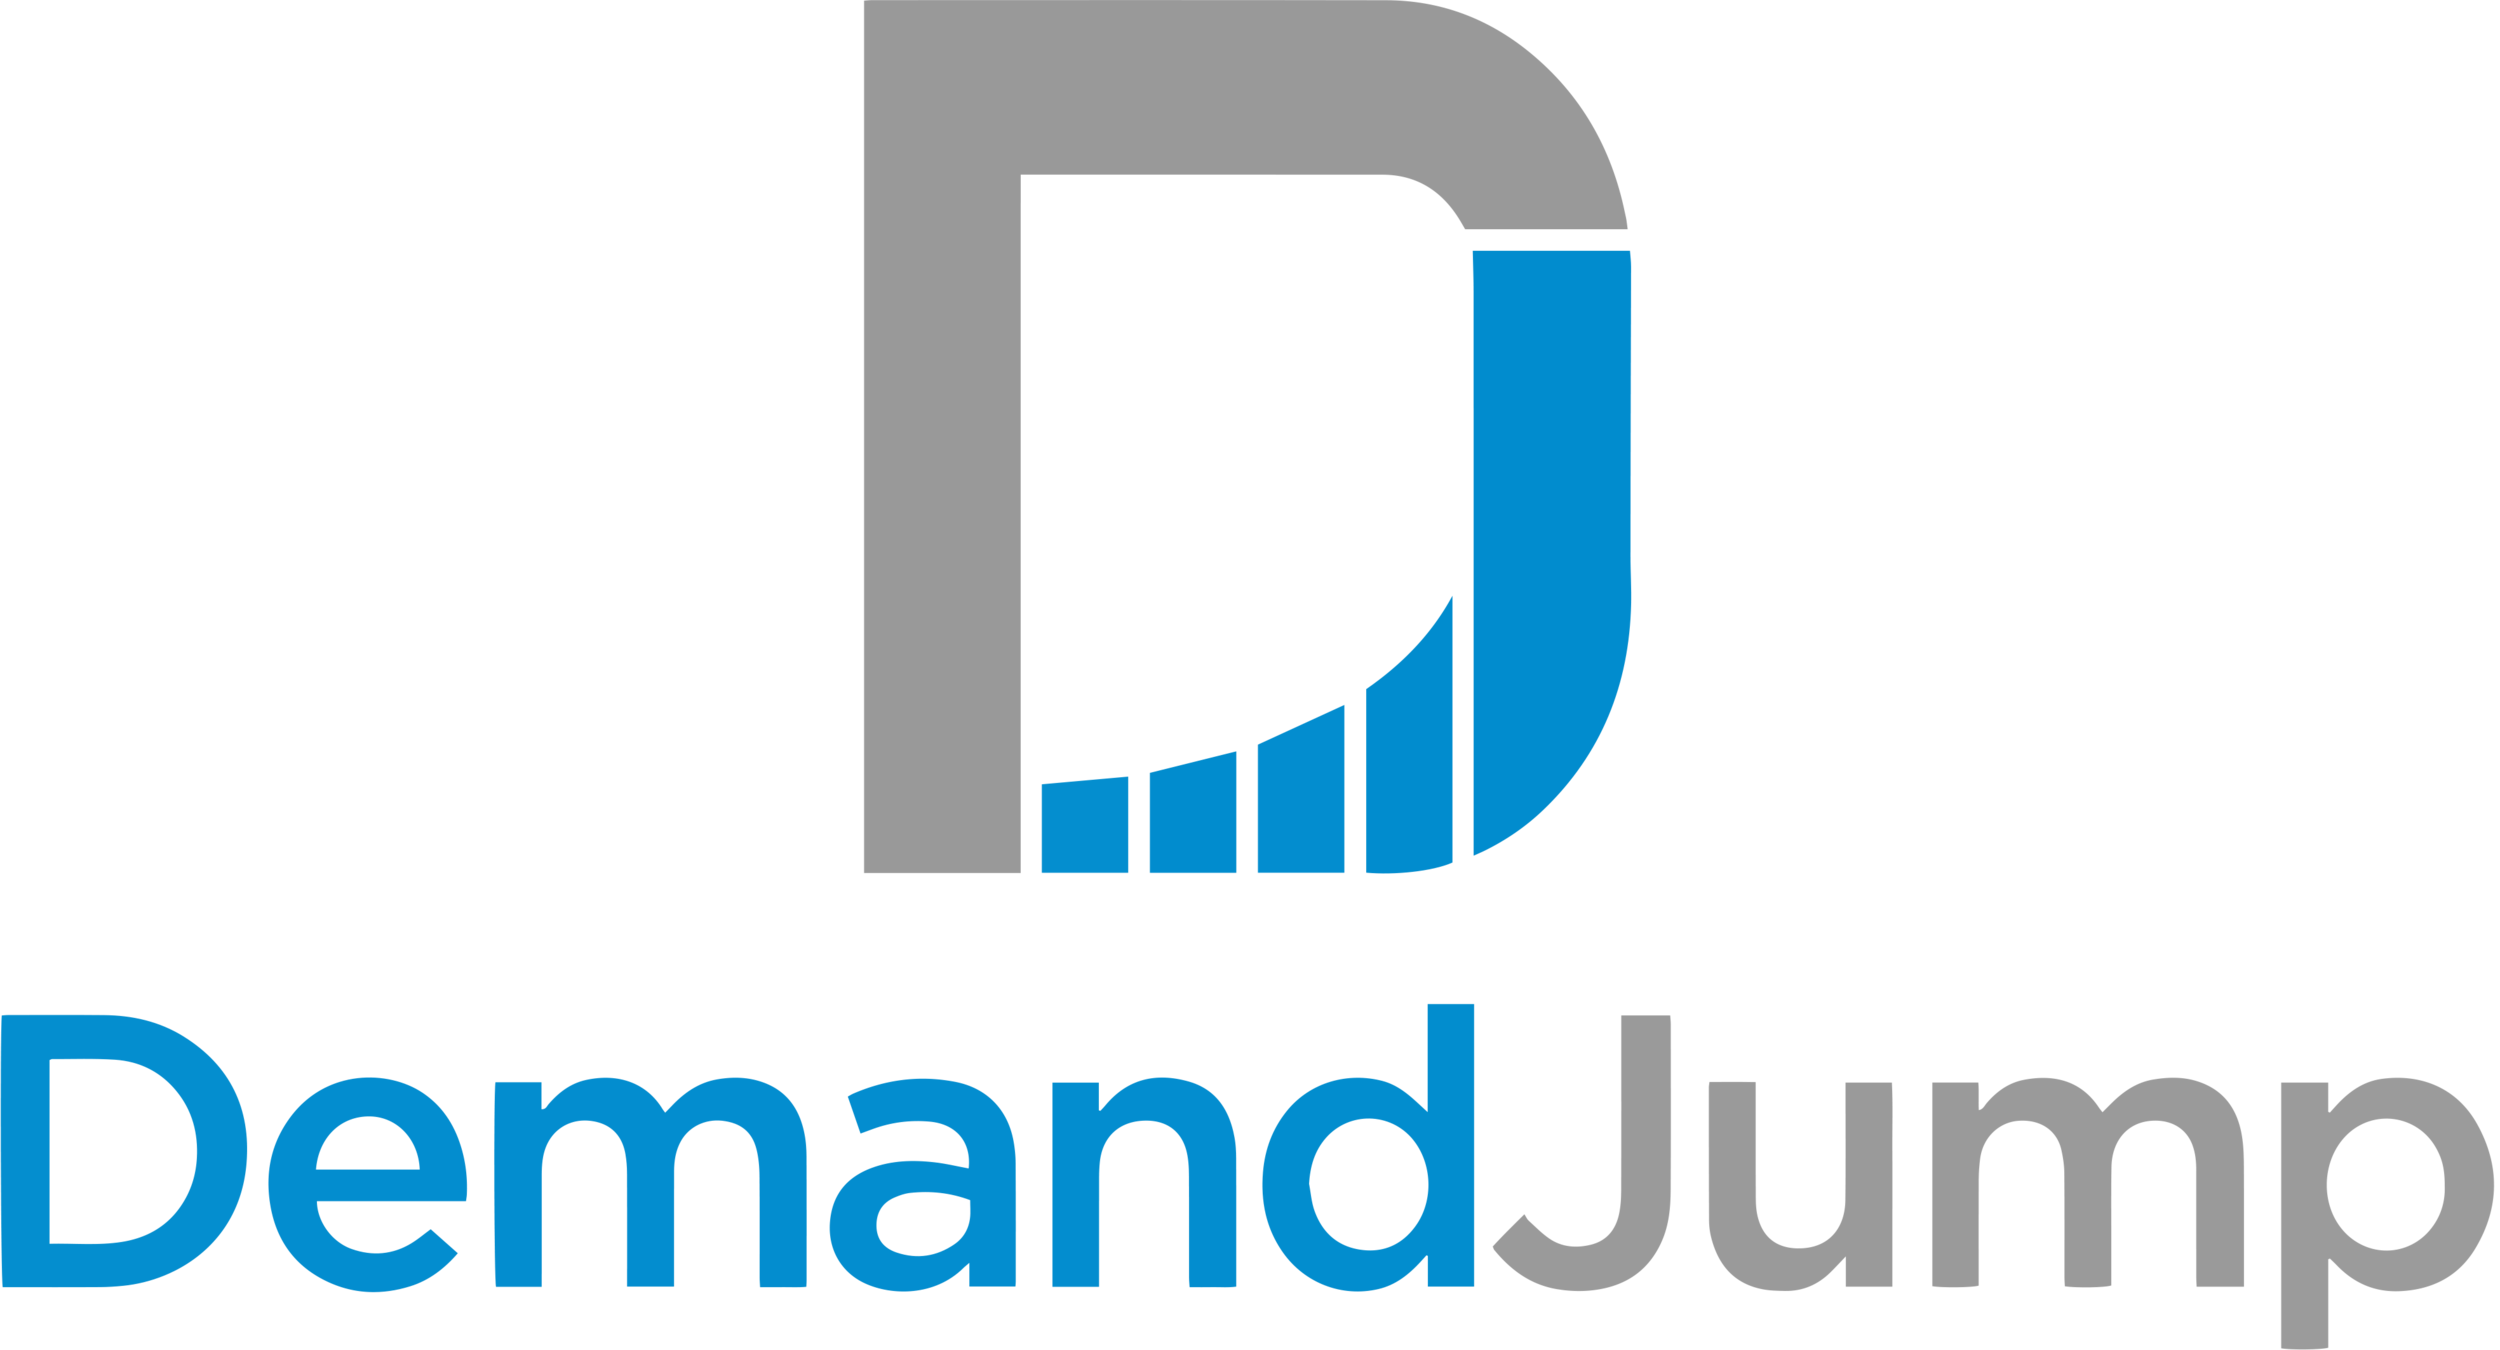 - DemandJump's Artificial Intelligence Marketing (AIM) Platform makes sense of digital data so marketers can discover the largest opportunities specific to their brands, see a single version of truth, eliminate data silos and blind spots, optimize budget allocation and drive revenue growth across all digital marketing channels to grow share of voice, mind and wallet.